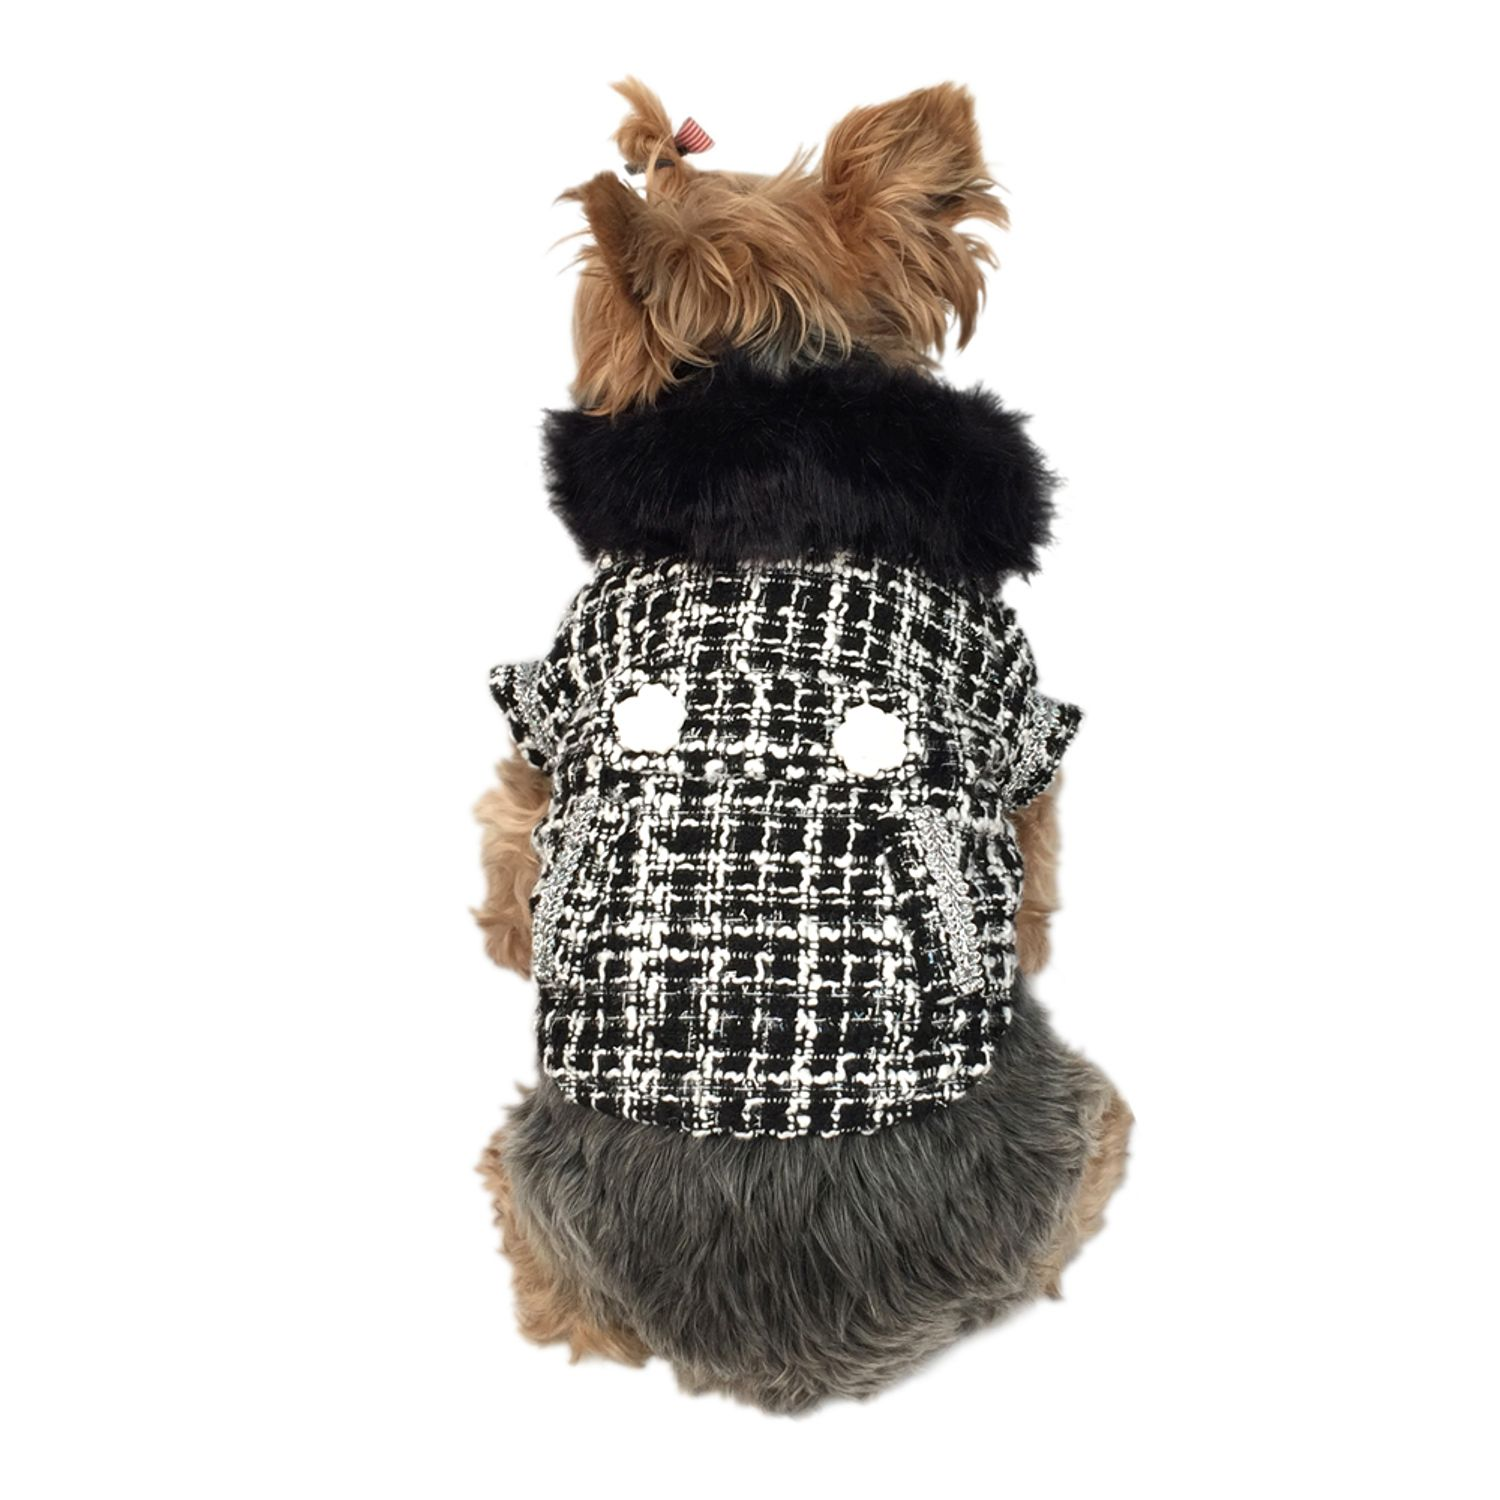 Black/White Faux Fur Collared Fashion Trench Coat Warm Winter Apparel for Puppy Dog Clothing Clothes - Medium (Gift for Pet)